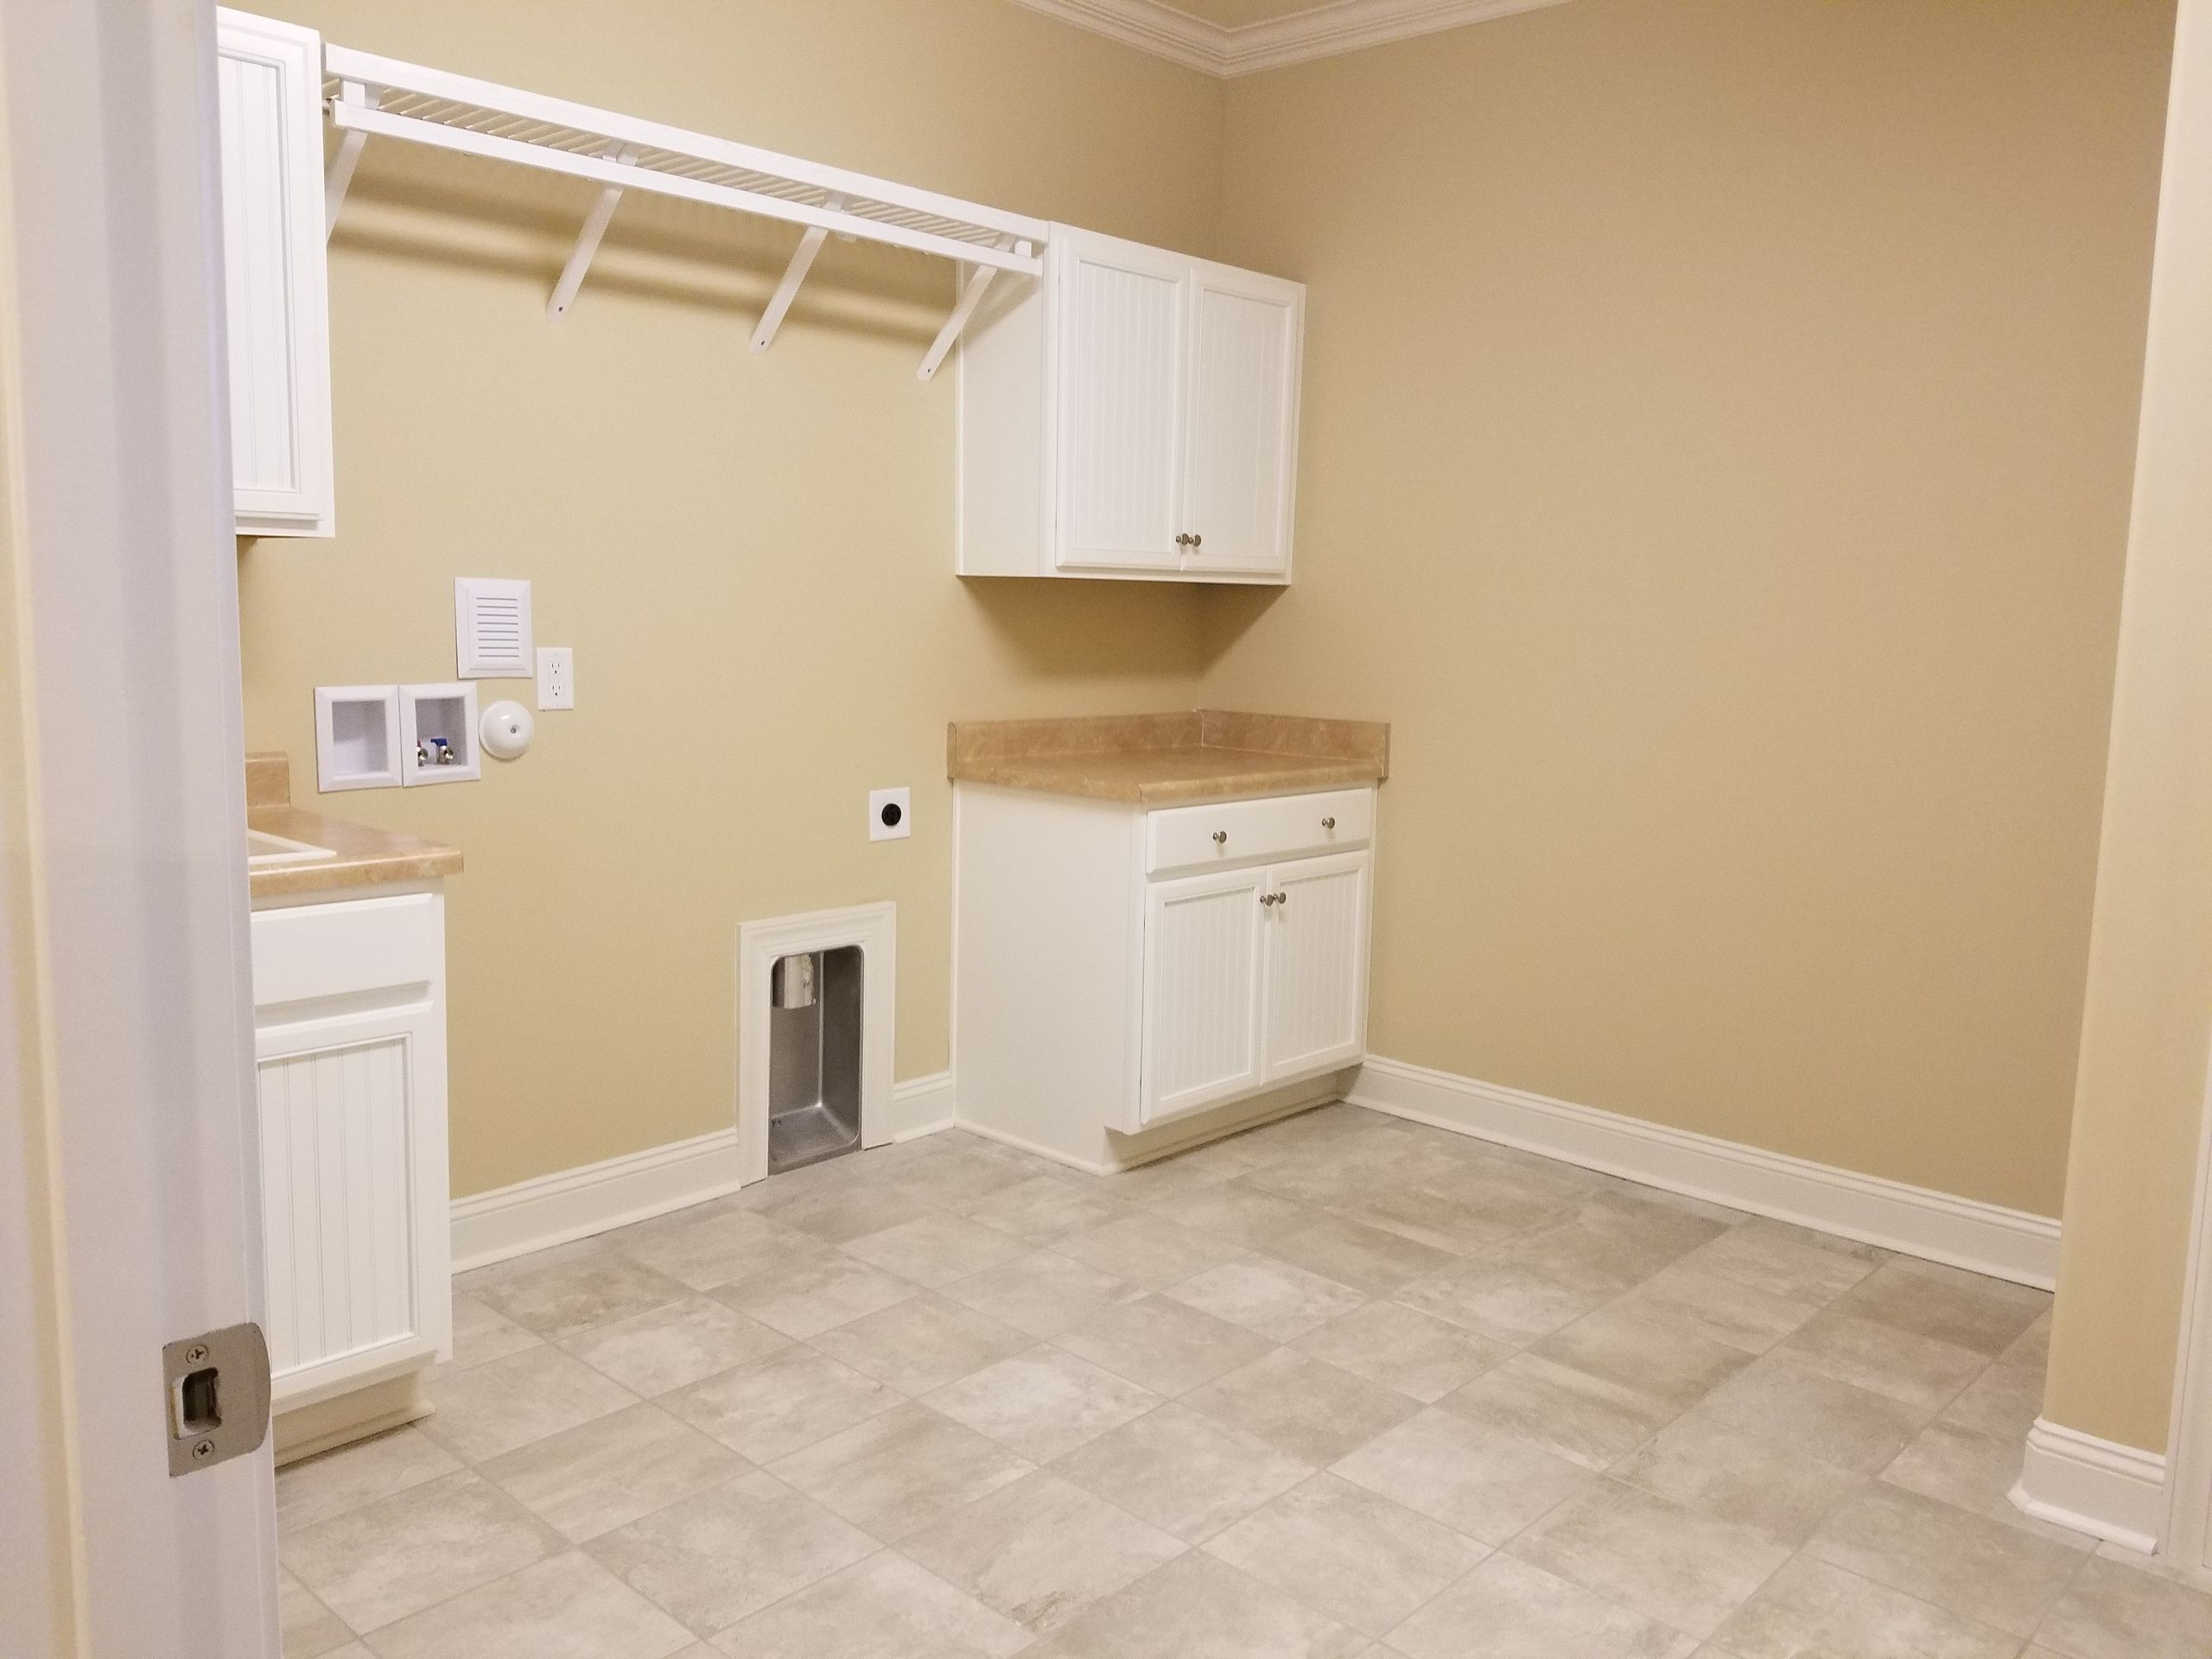 Laundry Room or Utility Room